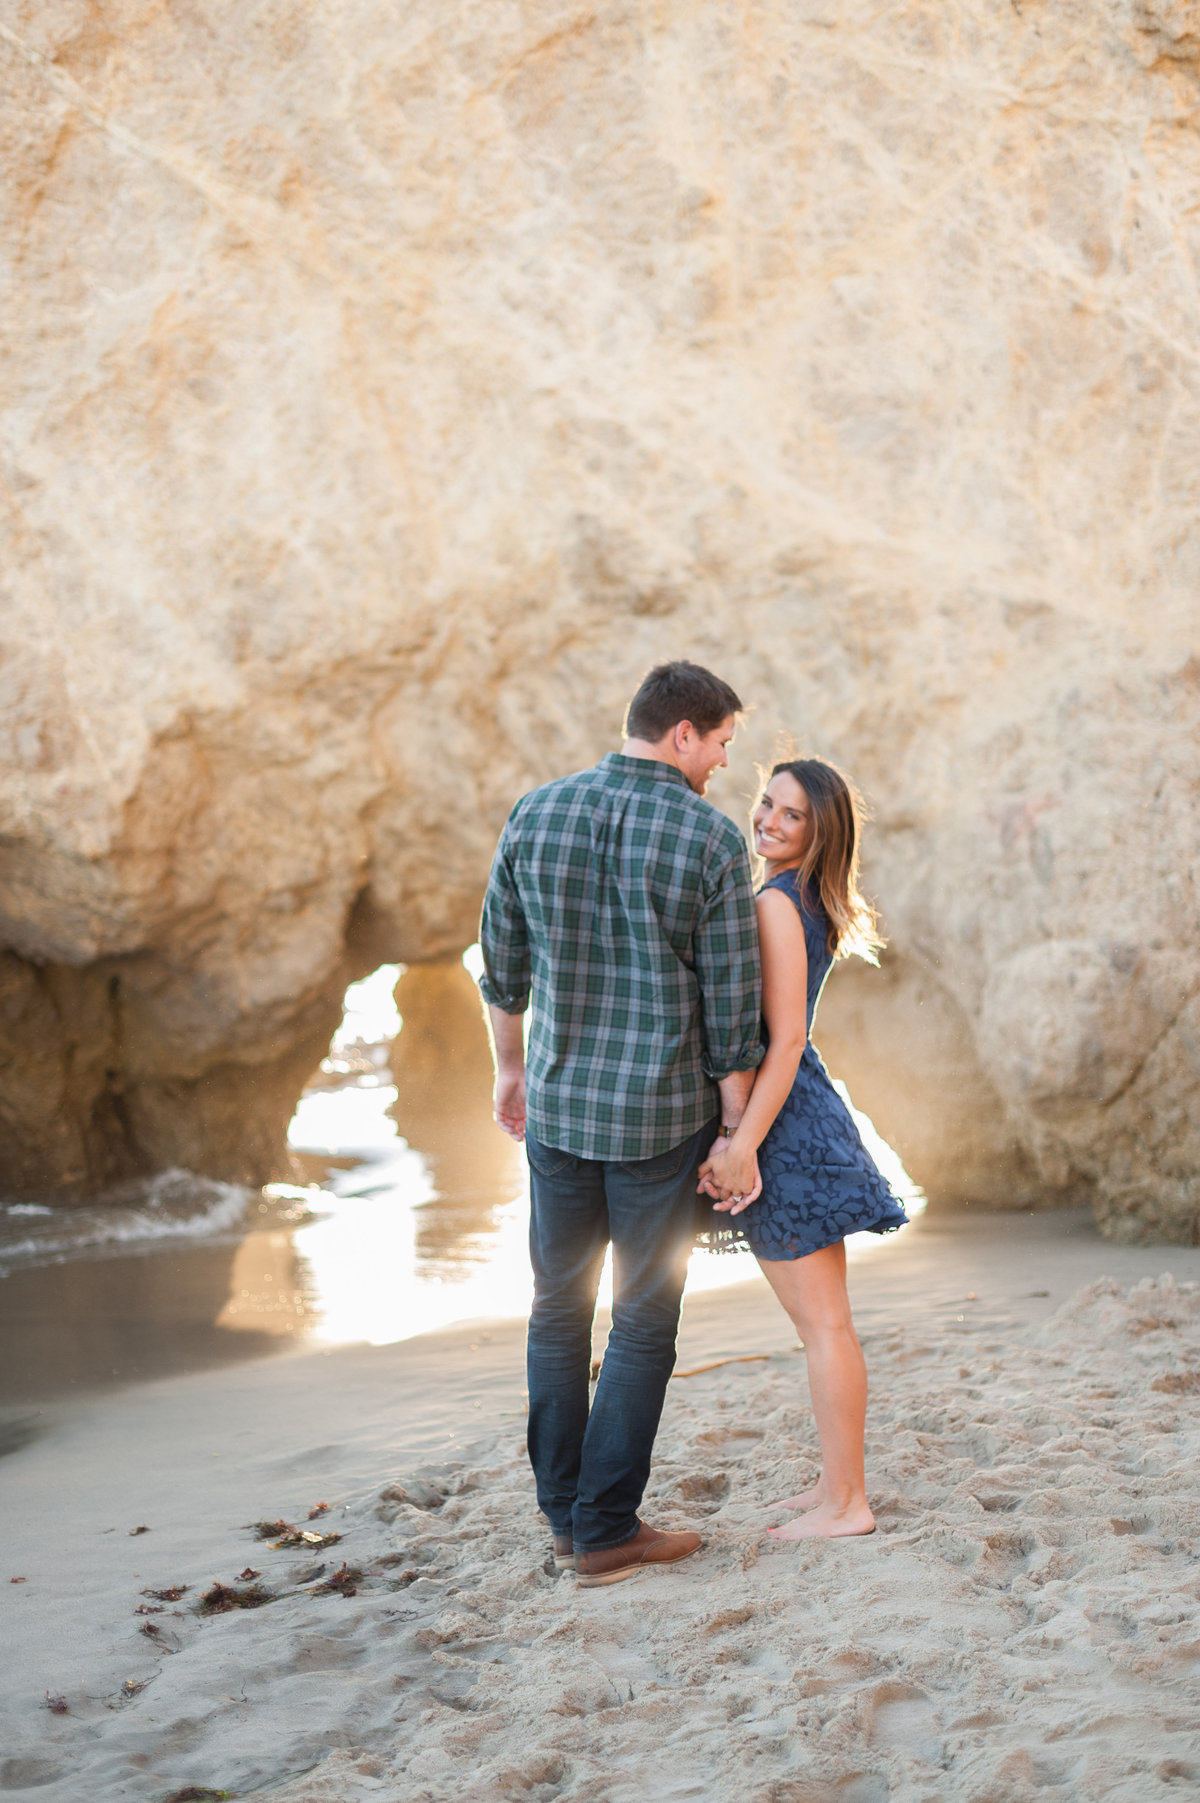 Matt-Hanna-engagements-078